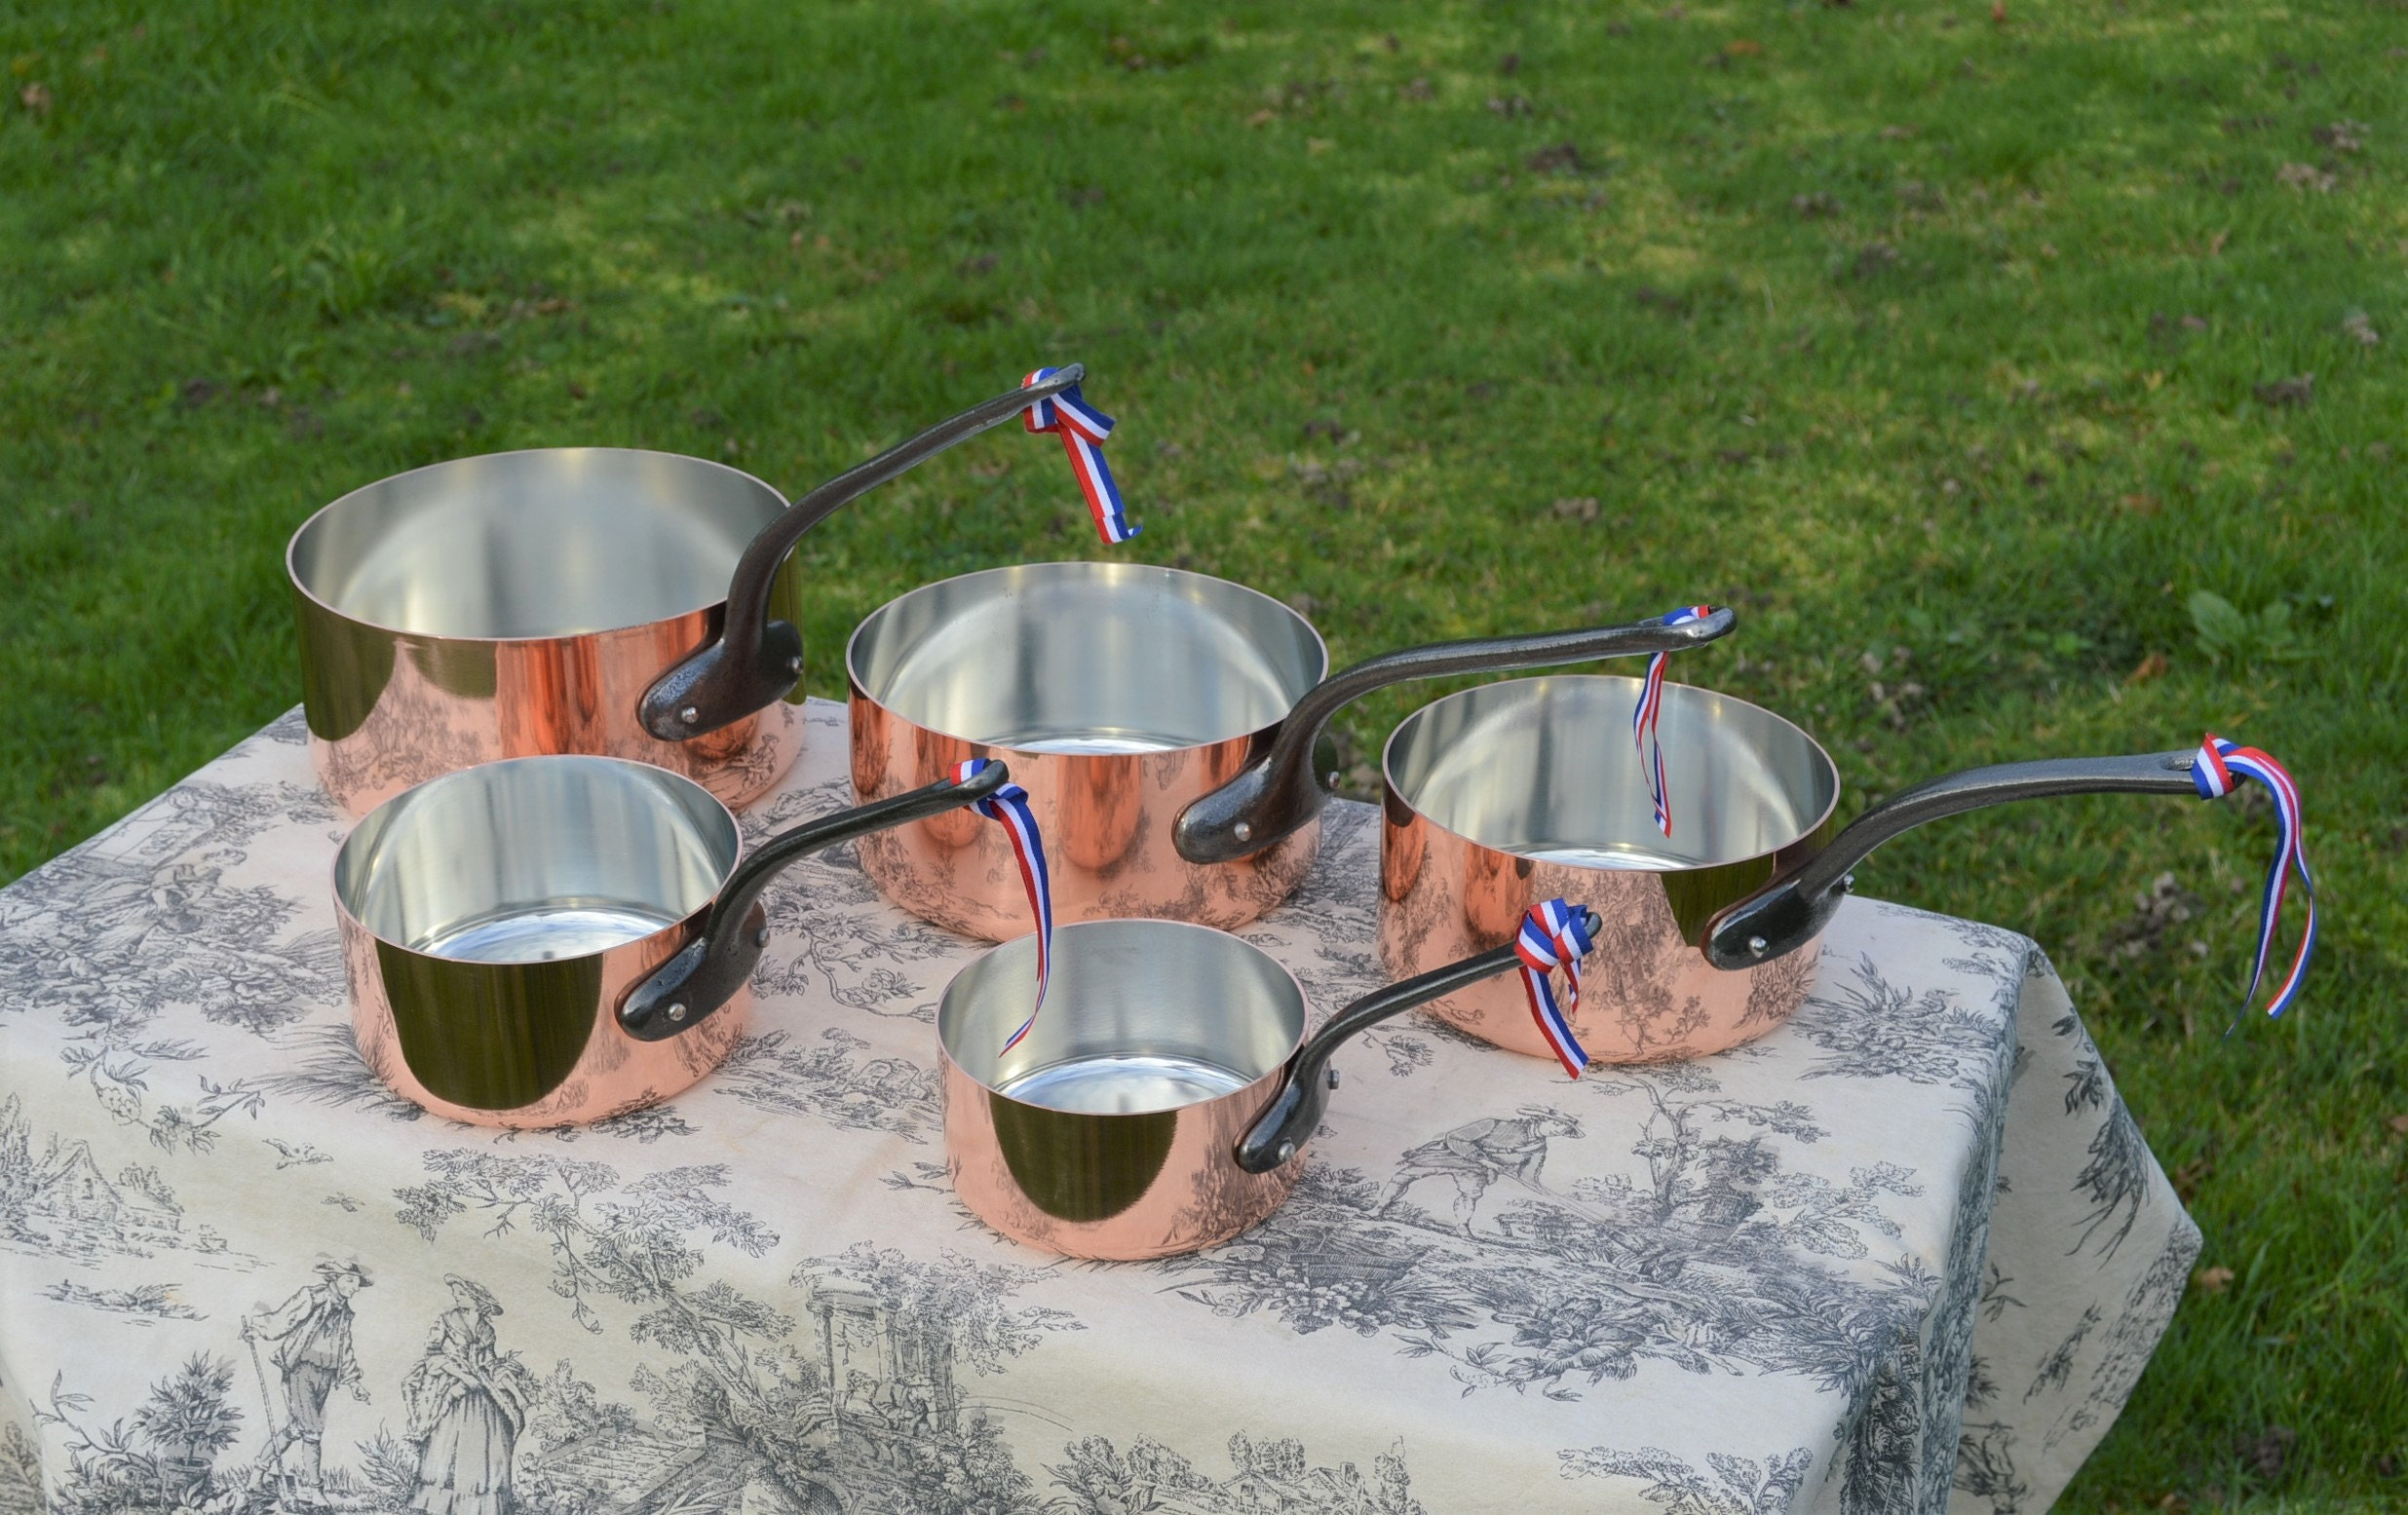 NKC Sets of Copper Pans